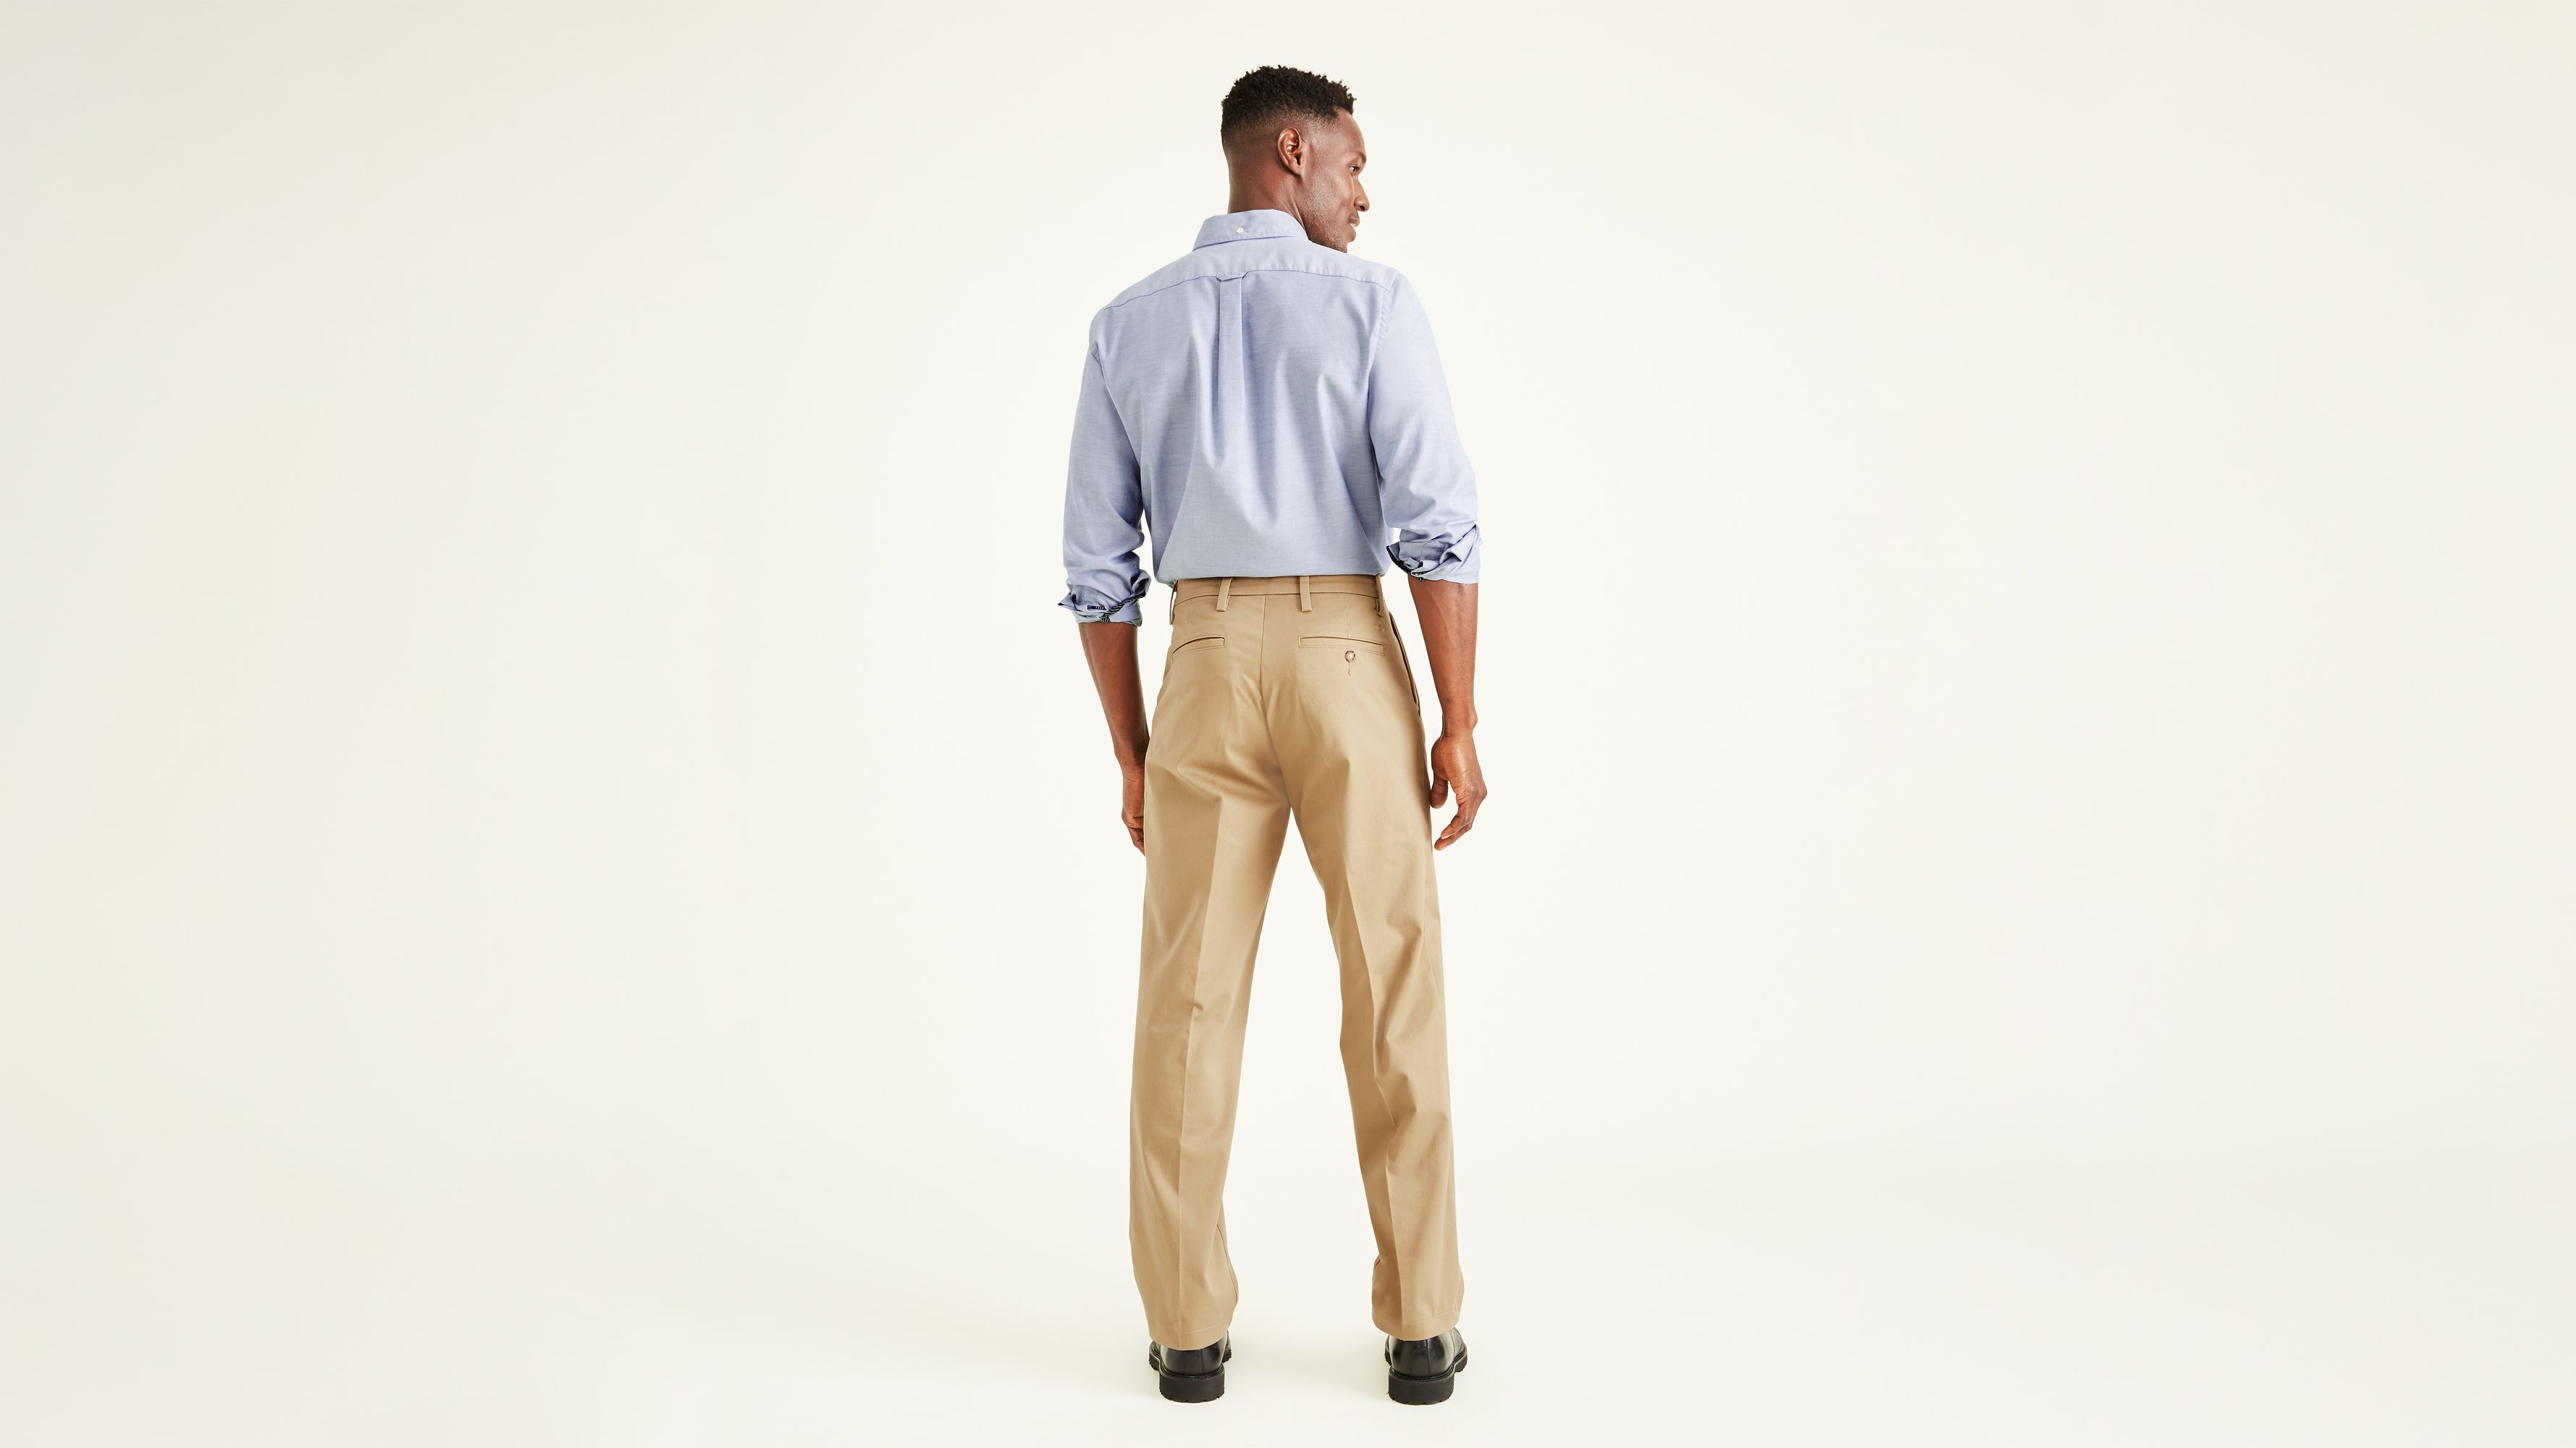 a437973b977a9b Workday Khaki Pants With Smart 360 Flex™, Classic Fit - Tan 399830001 |  Dockers® US